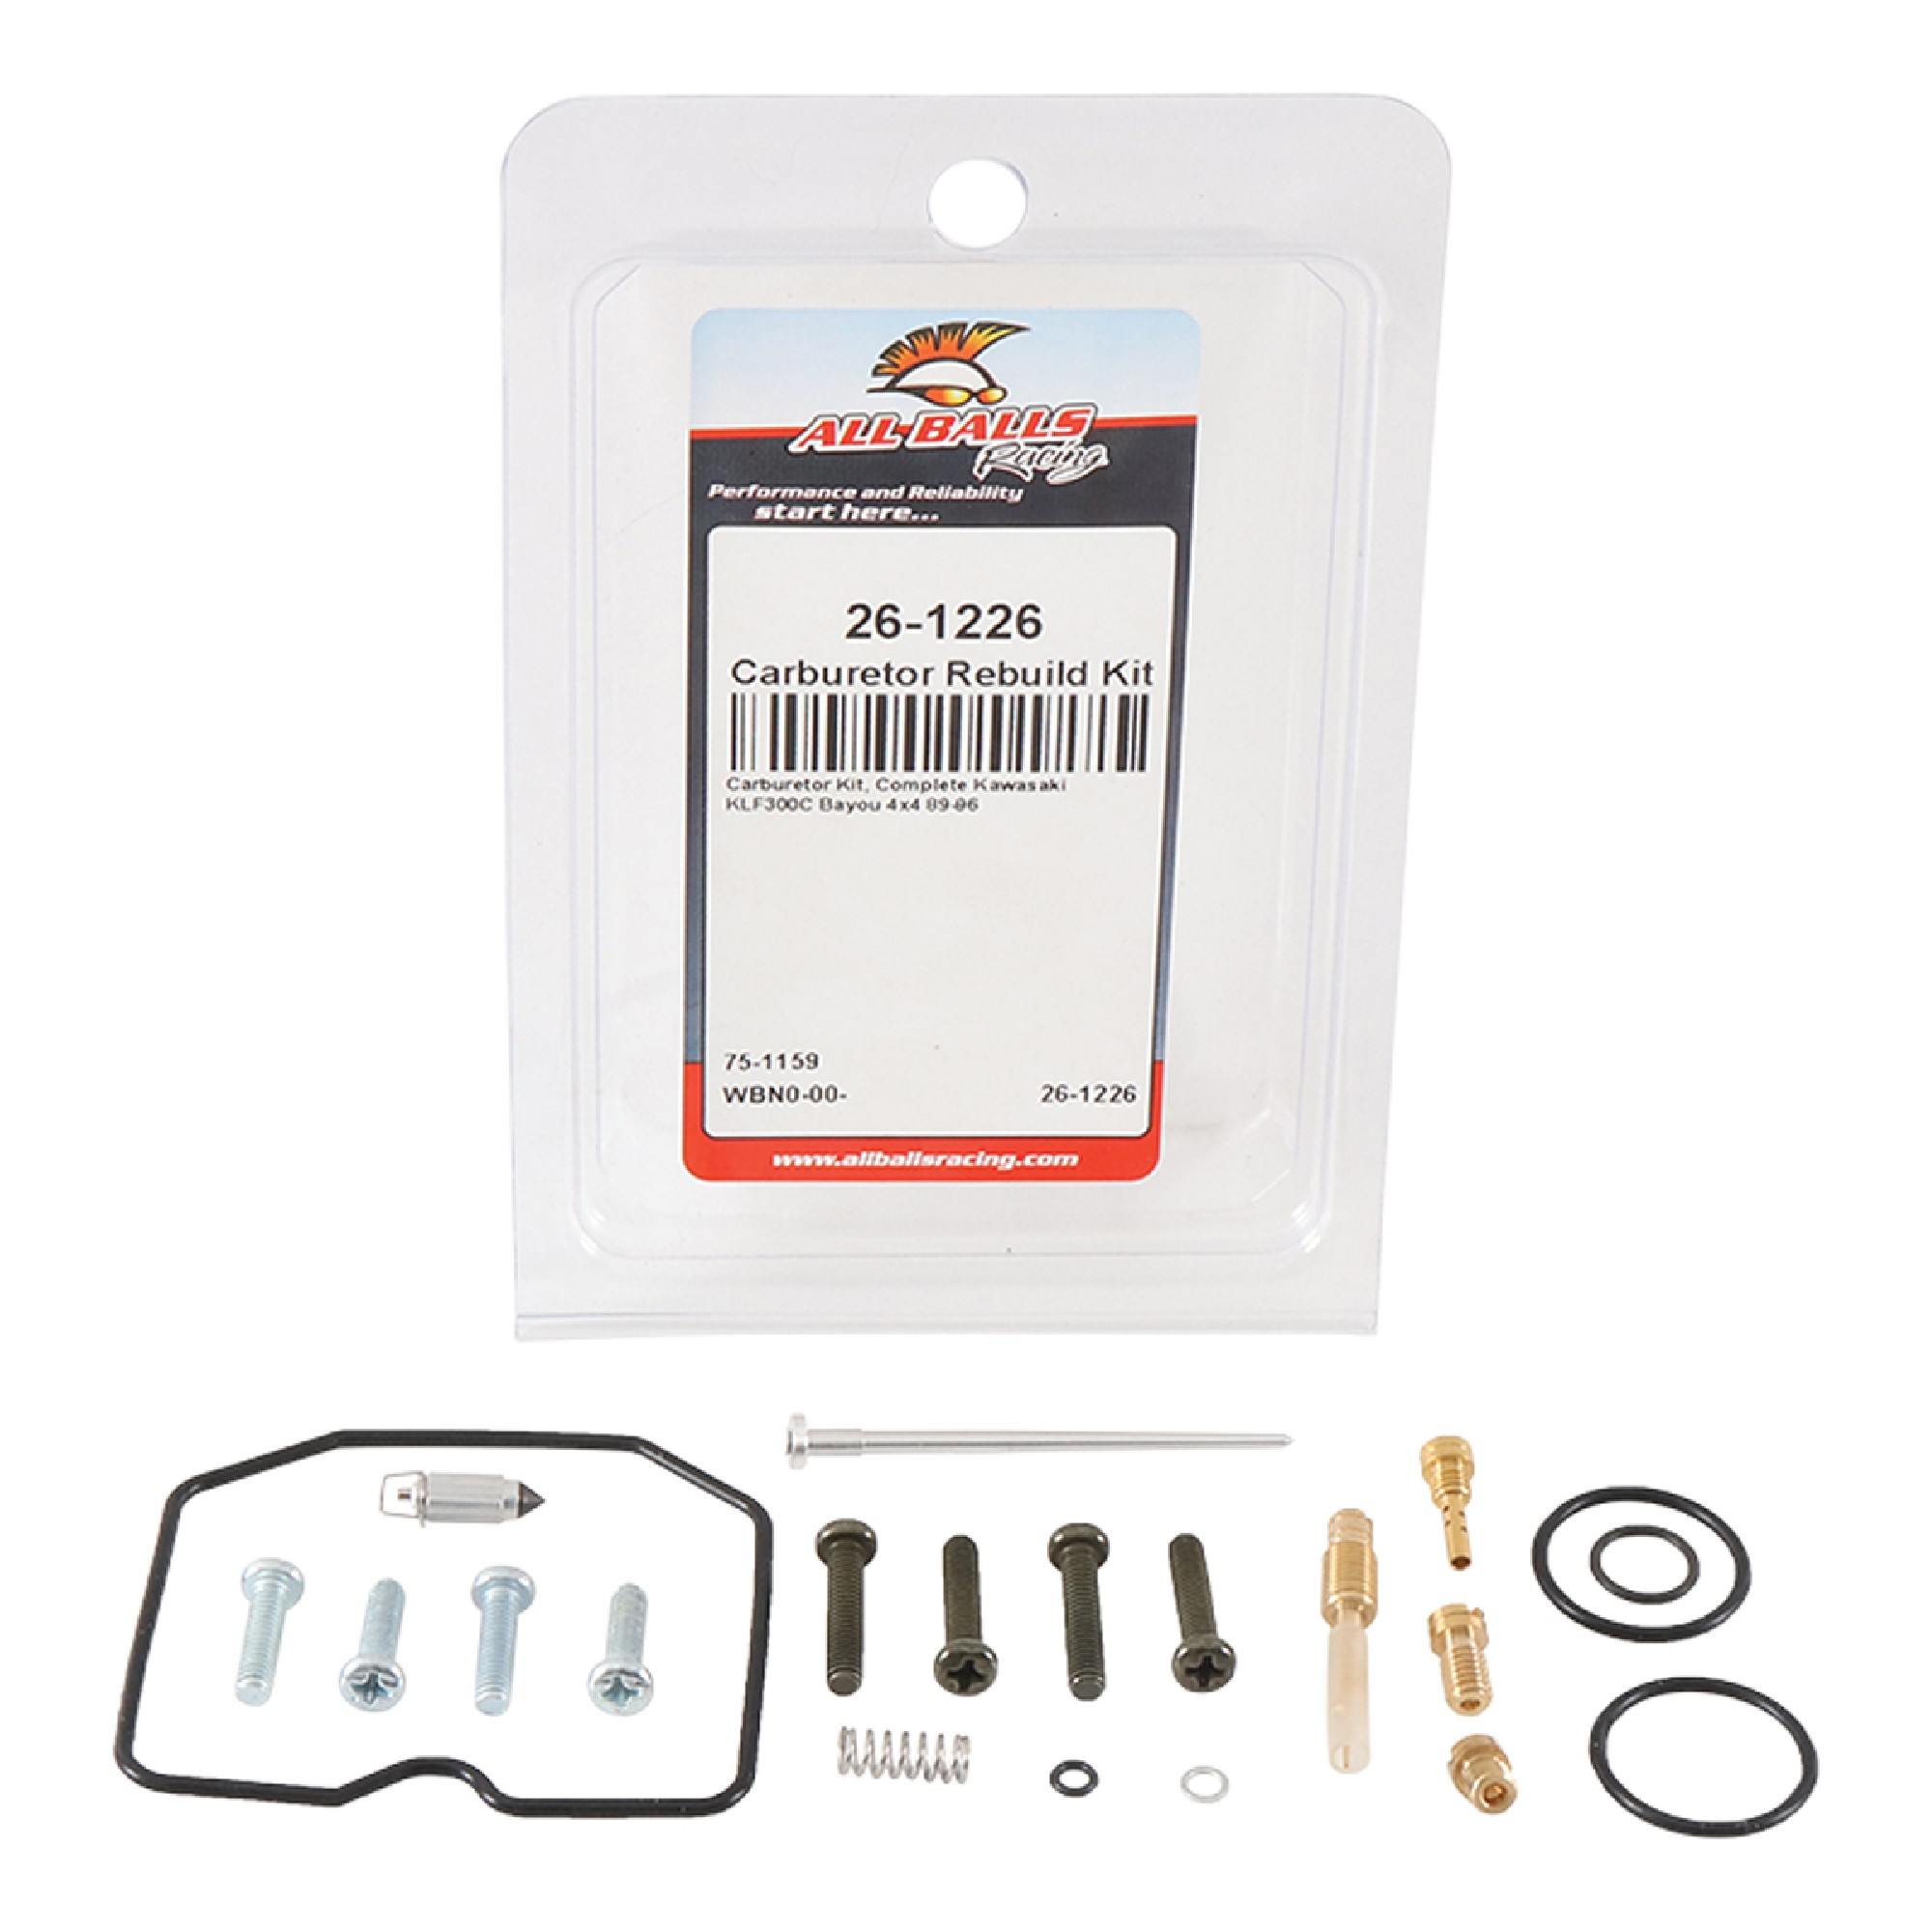 New All Balls Carburetor Rebuild Kit 26